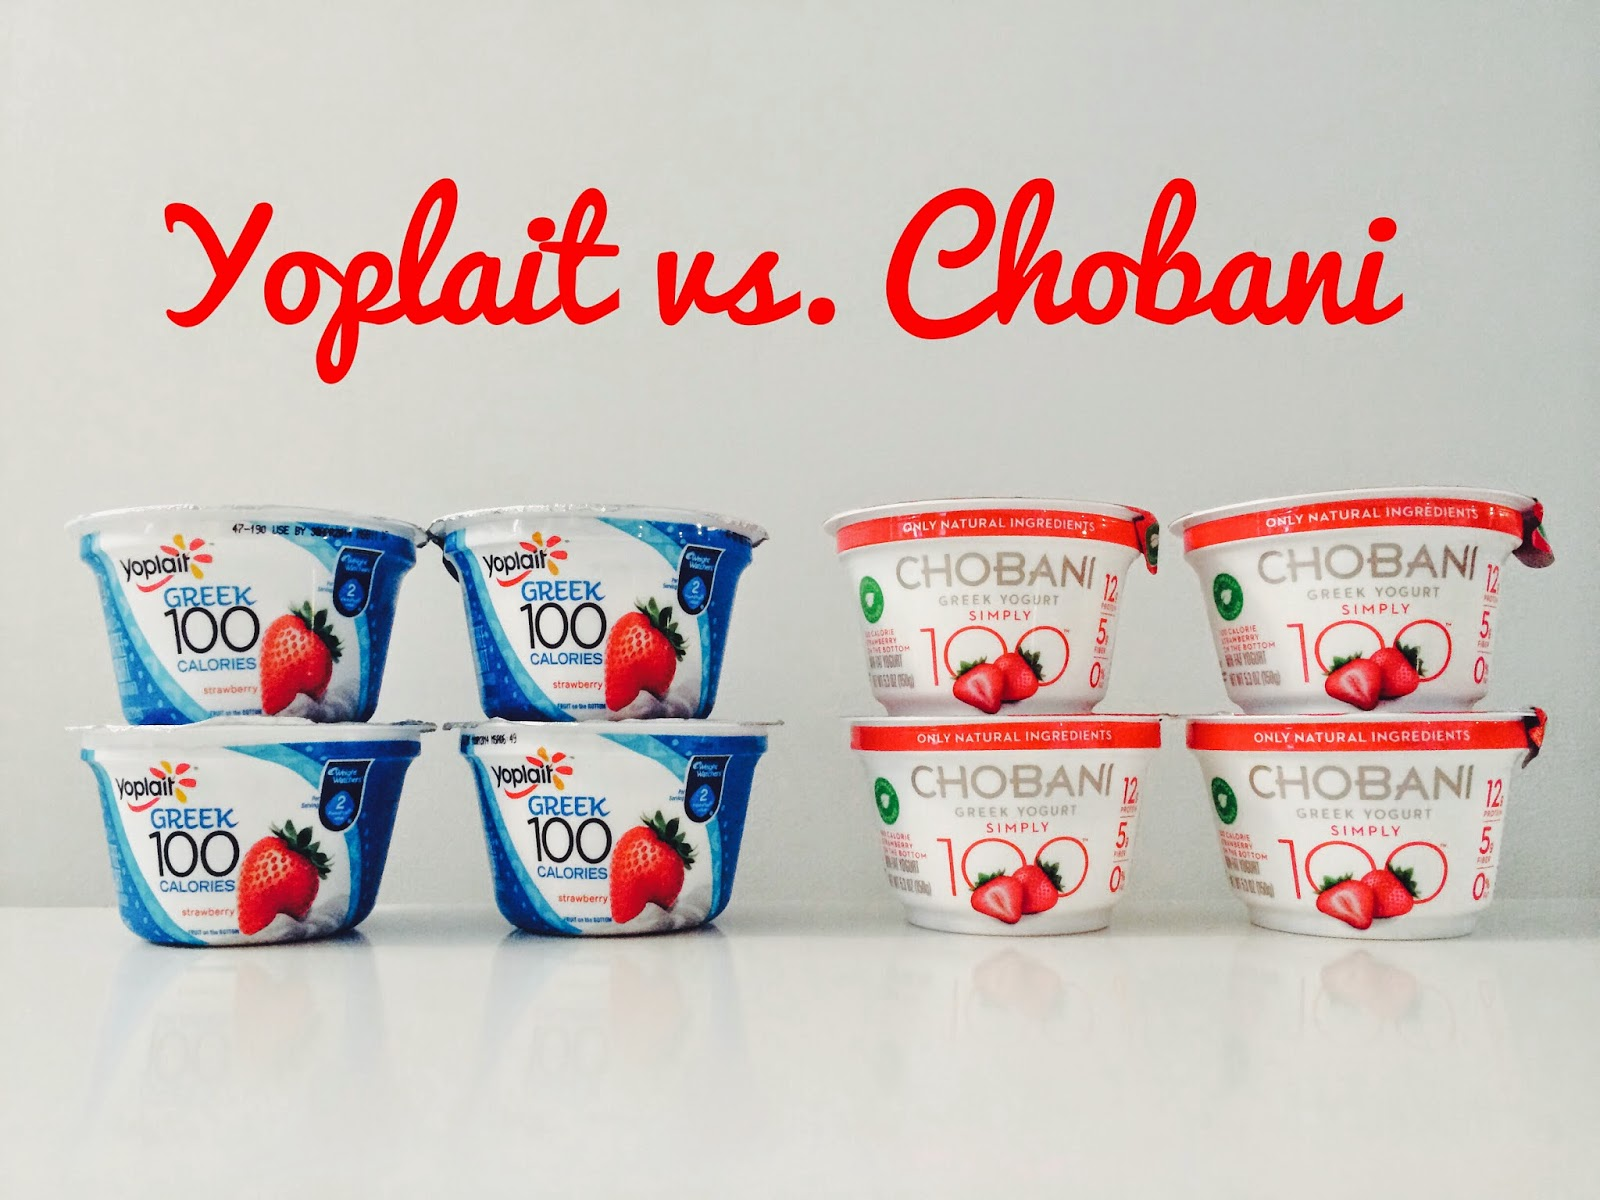 Yoplait vs. Chobani